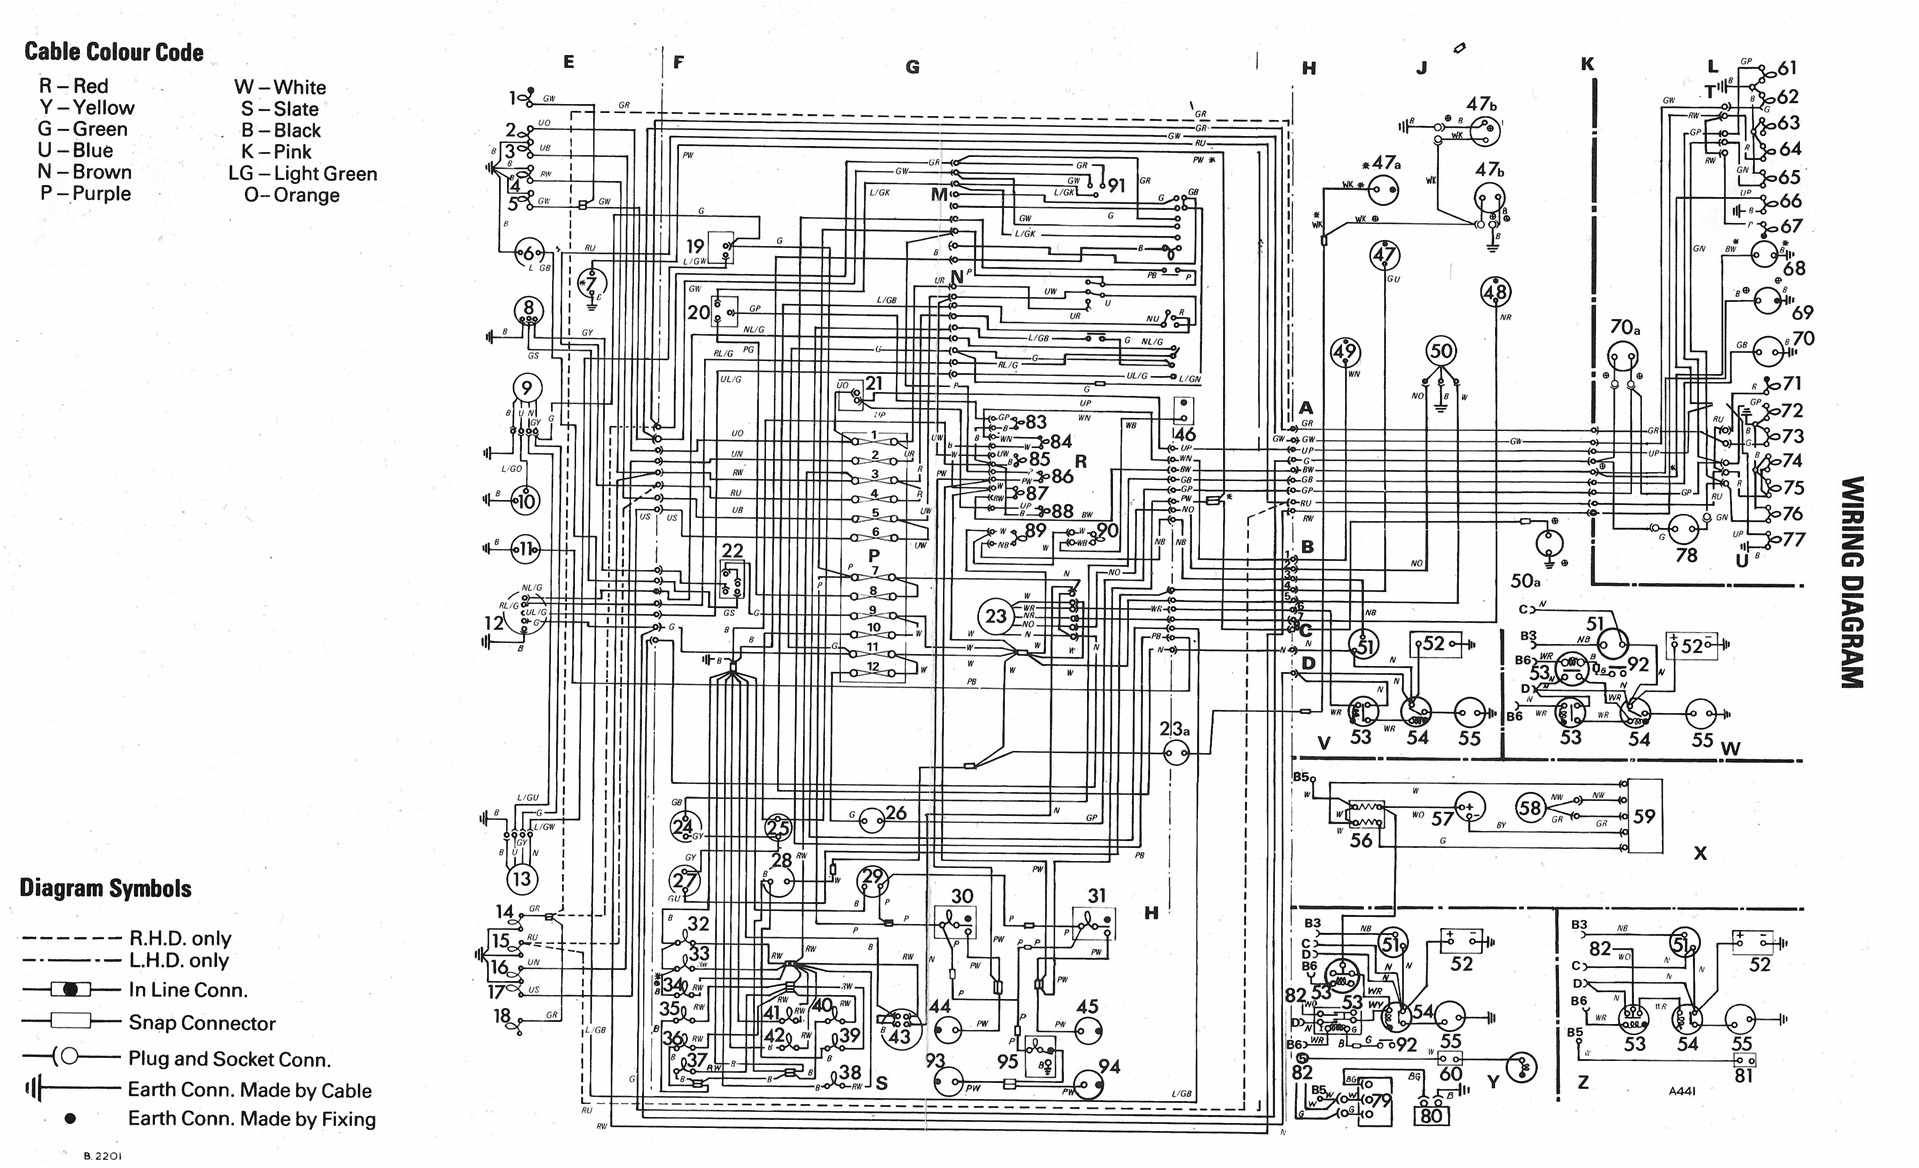 Electrical Wiring Diagram Of Volkswagen Golf Mk1 | Projekt